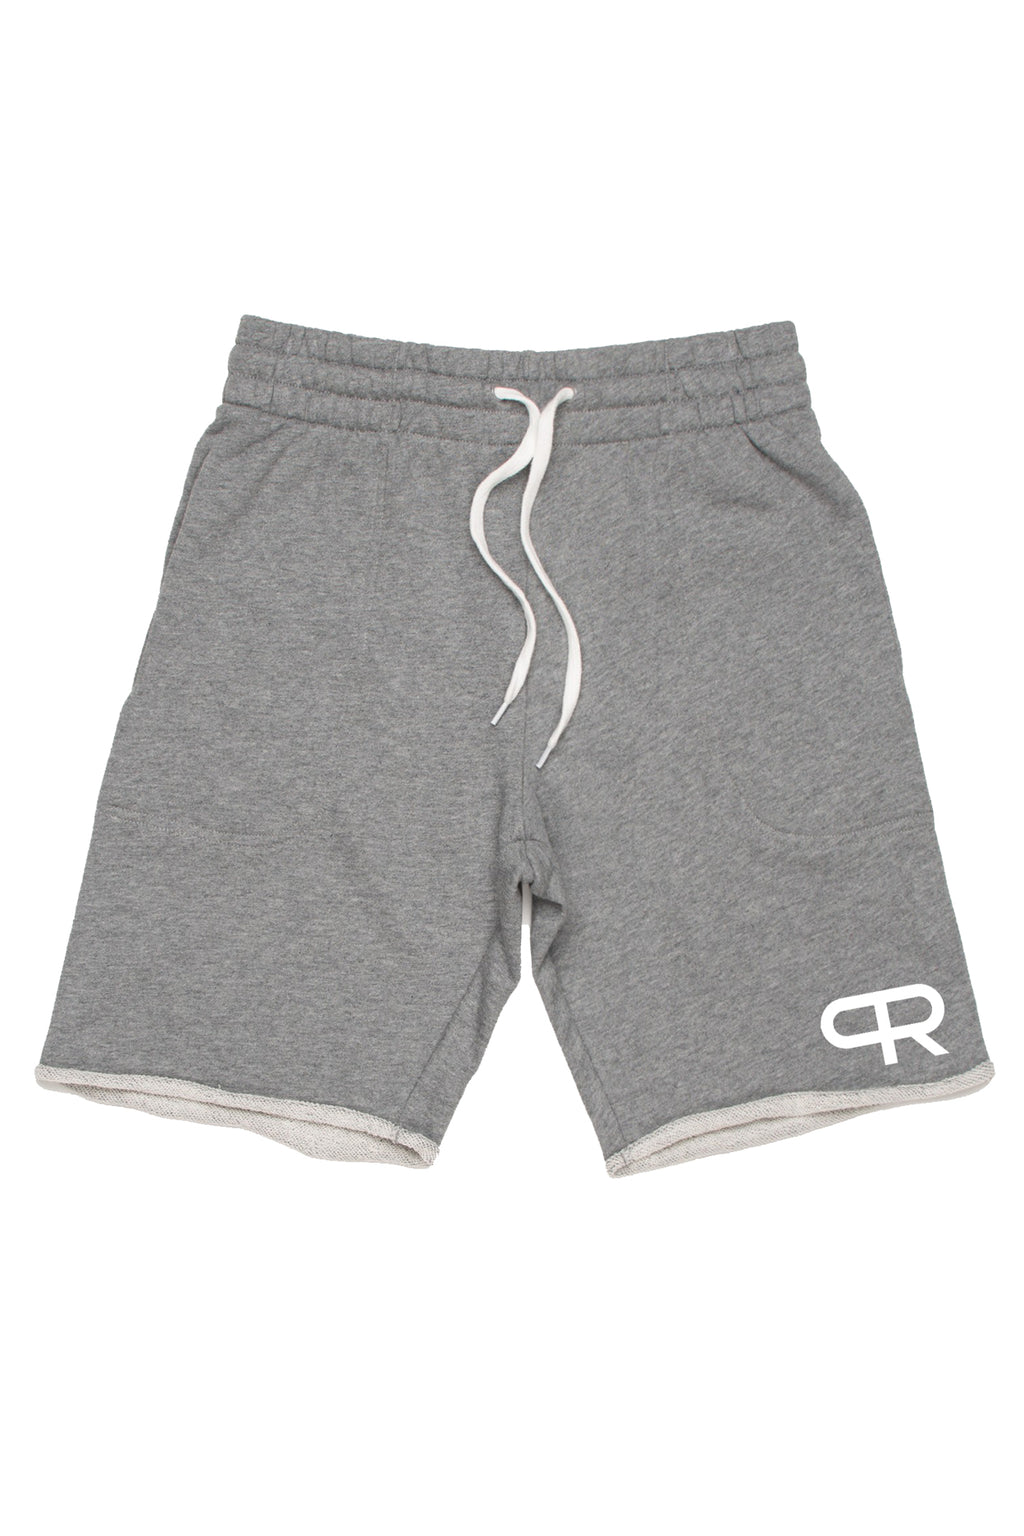 PR Athletic Sweat Shorts-PR101-Heather Grey